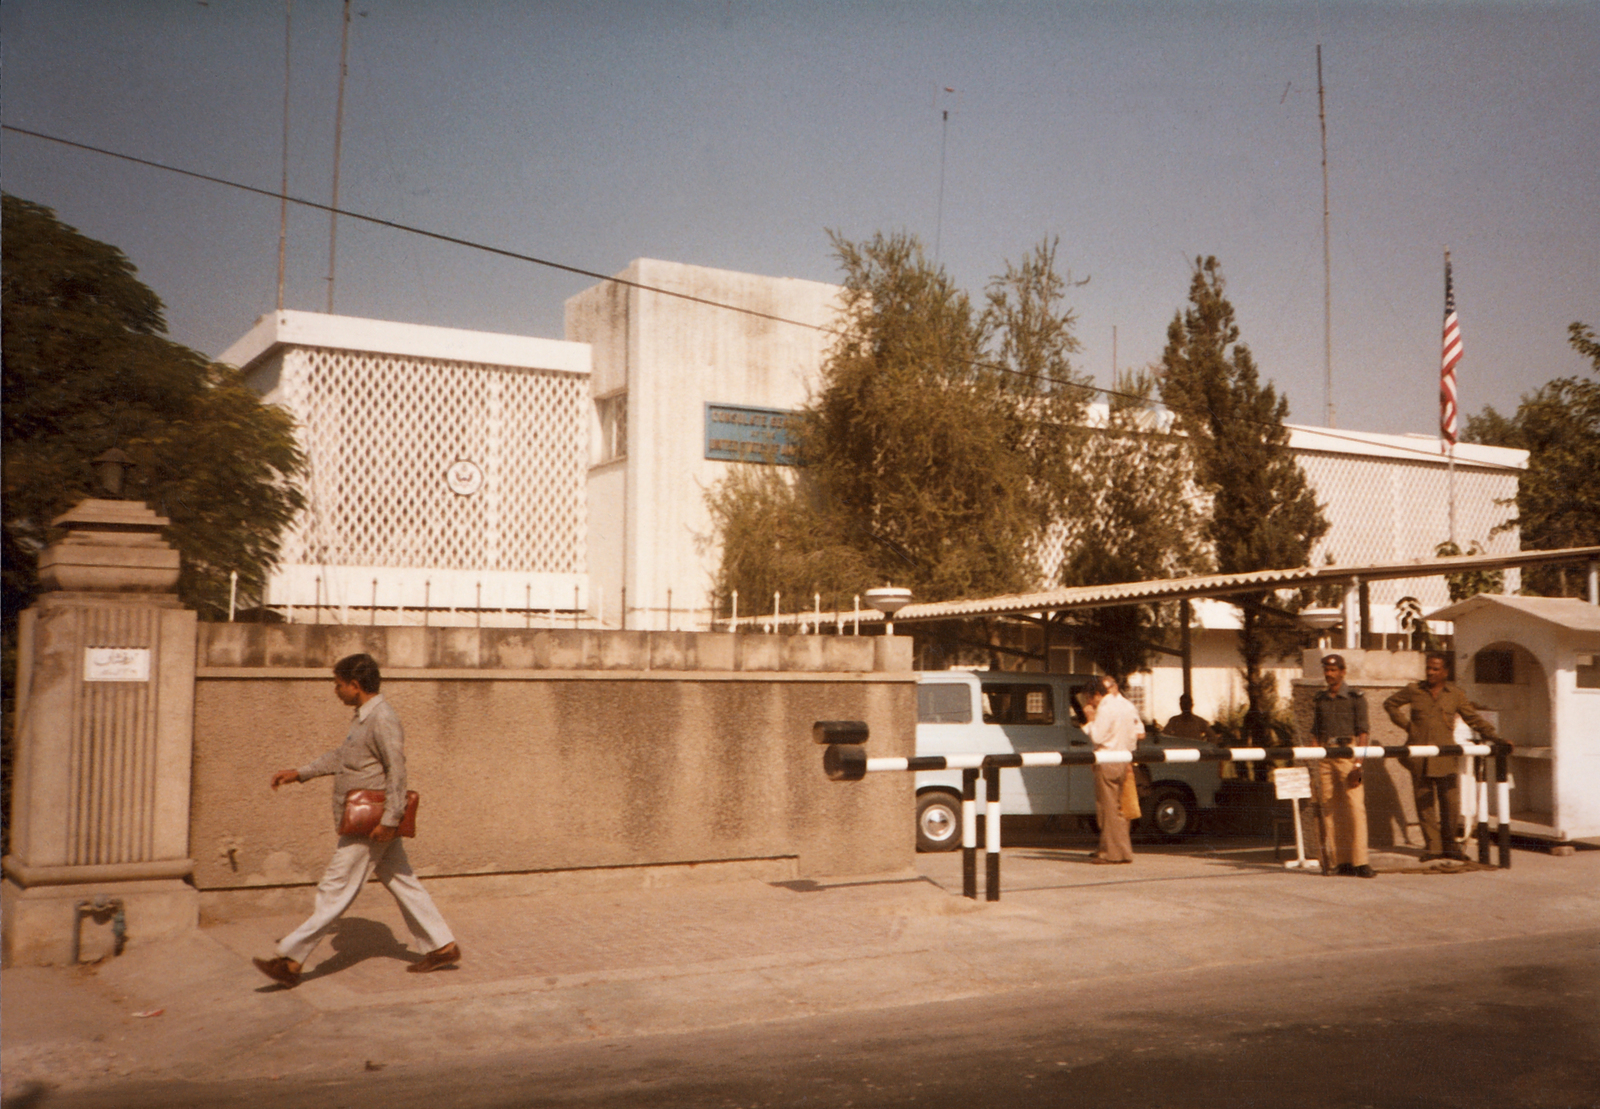 Lahore - Consulate Office Building - 1983